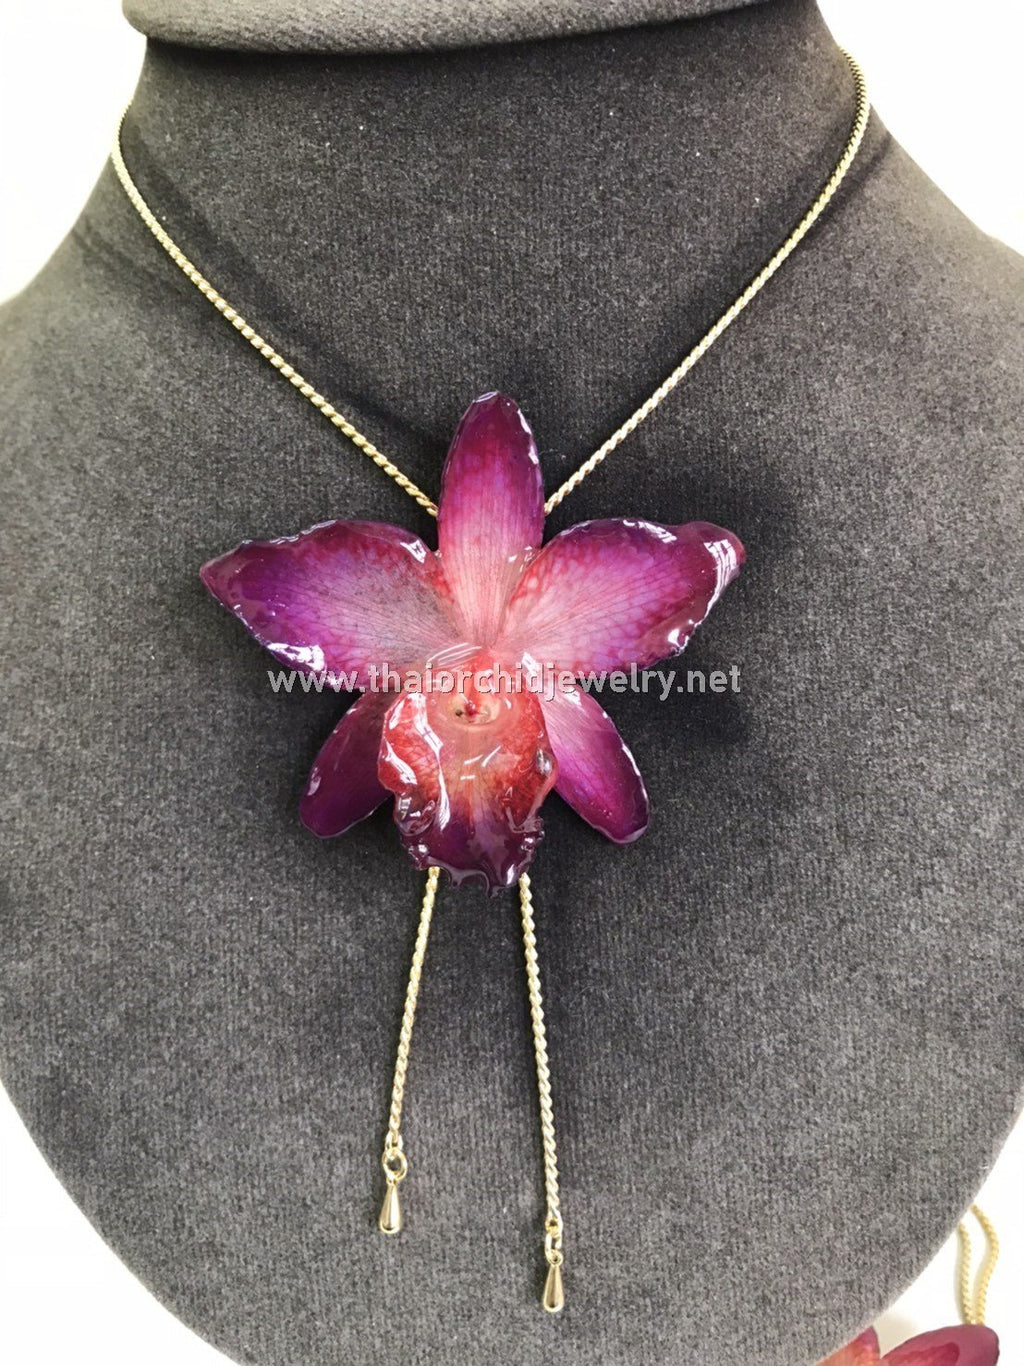 Cattleya Orchid Jewelry Slider Necklace Gold Plated 24K - Purple Fuchsia